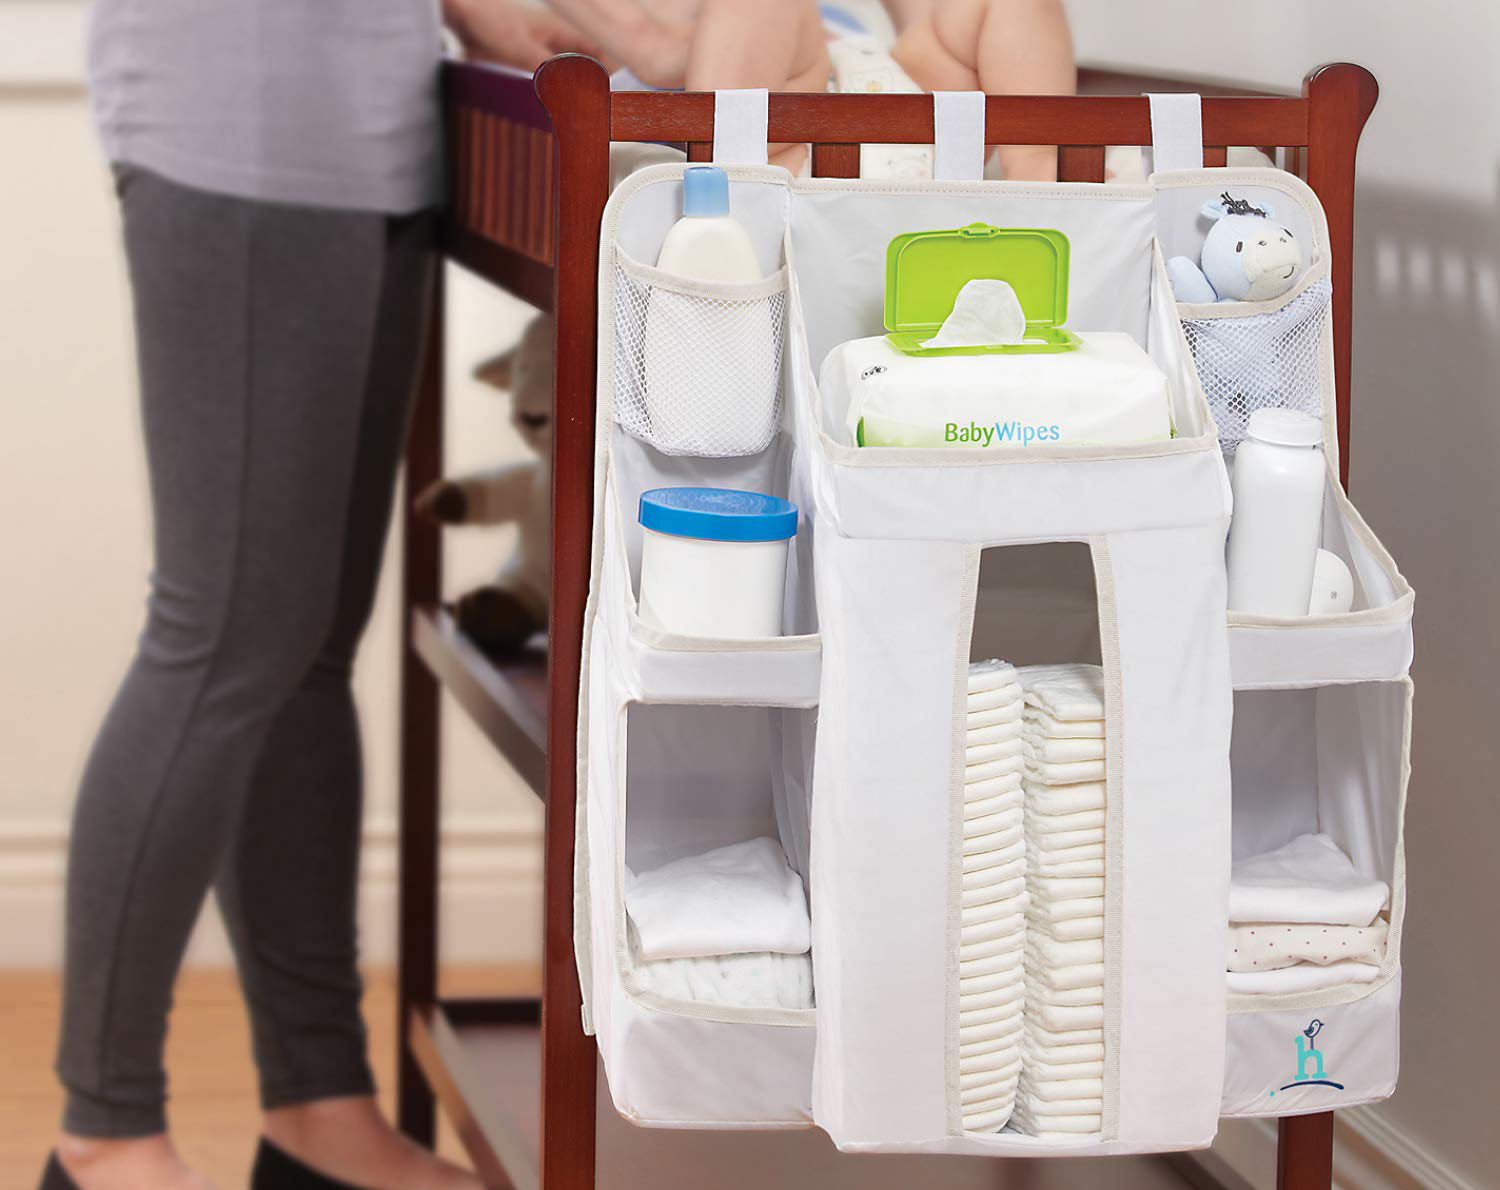 Nursery organizer and diaper caddy attached to crib